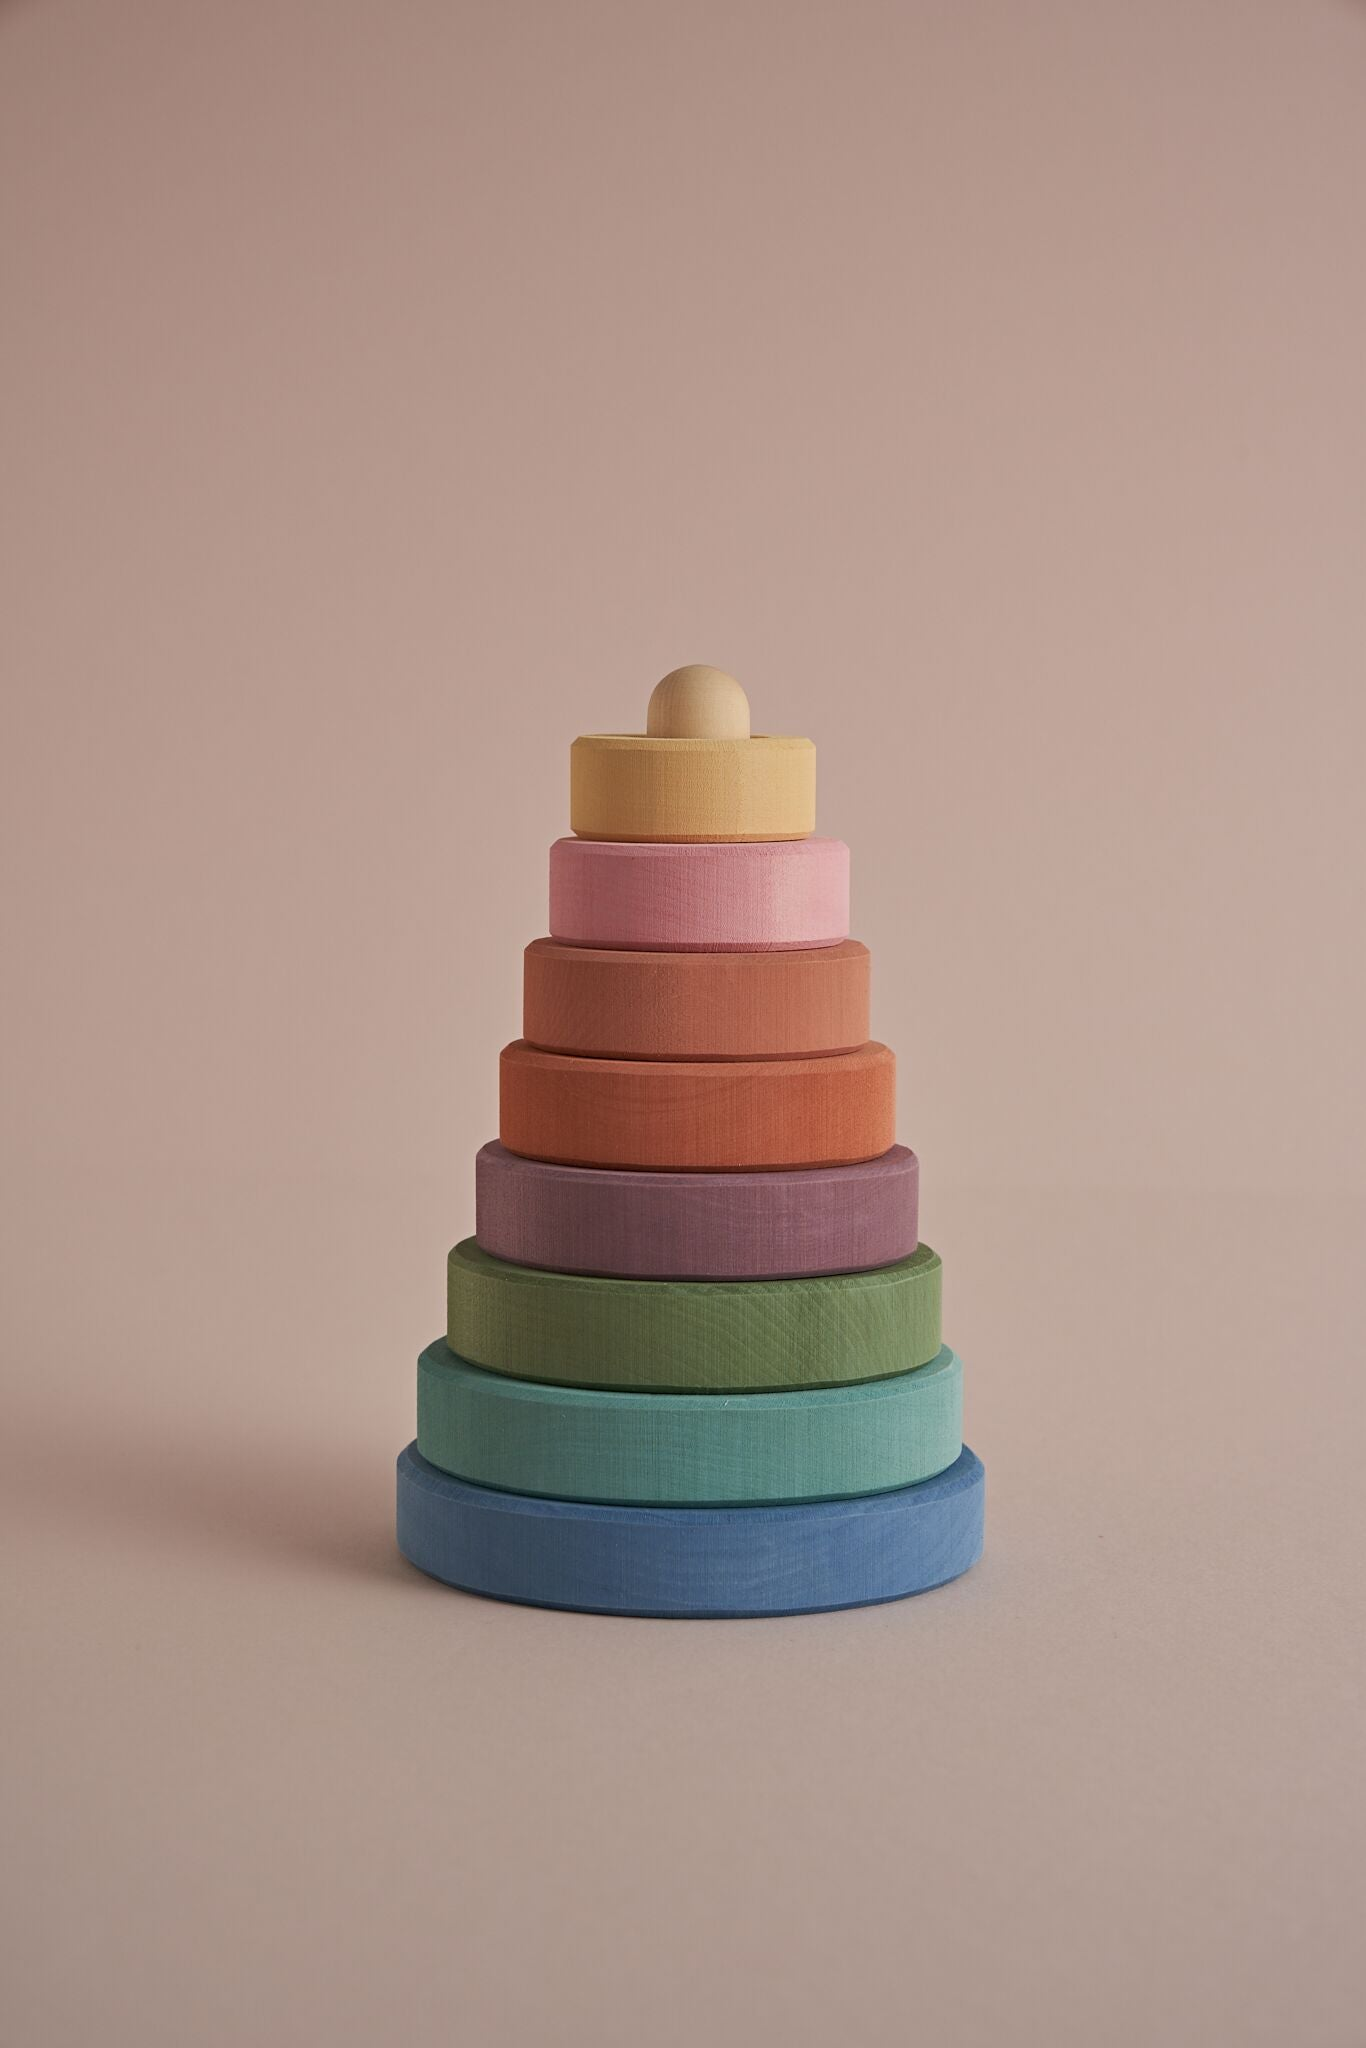 Raduga Grez Wooden Stacking Tower, Pastel